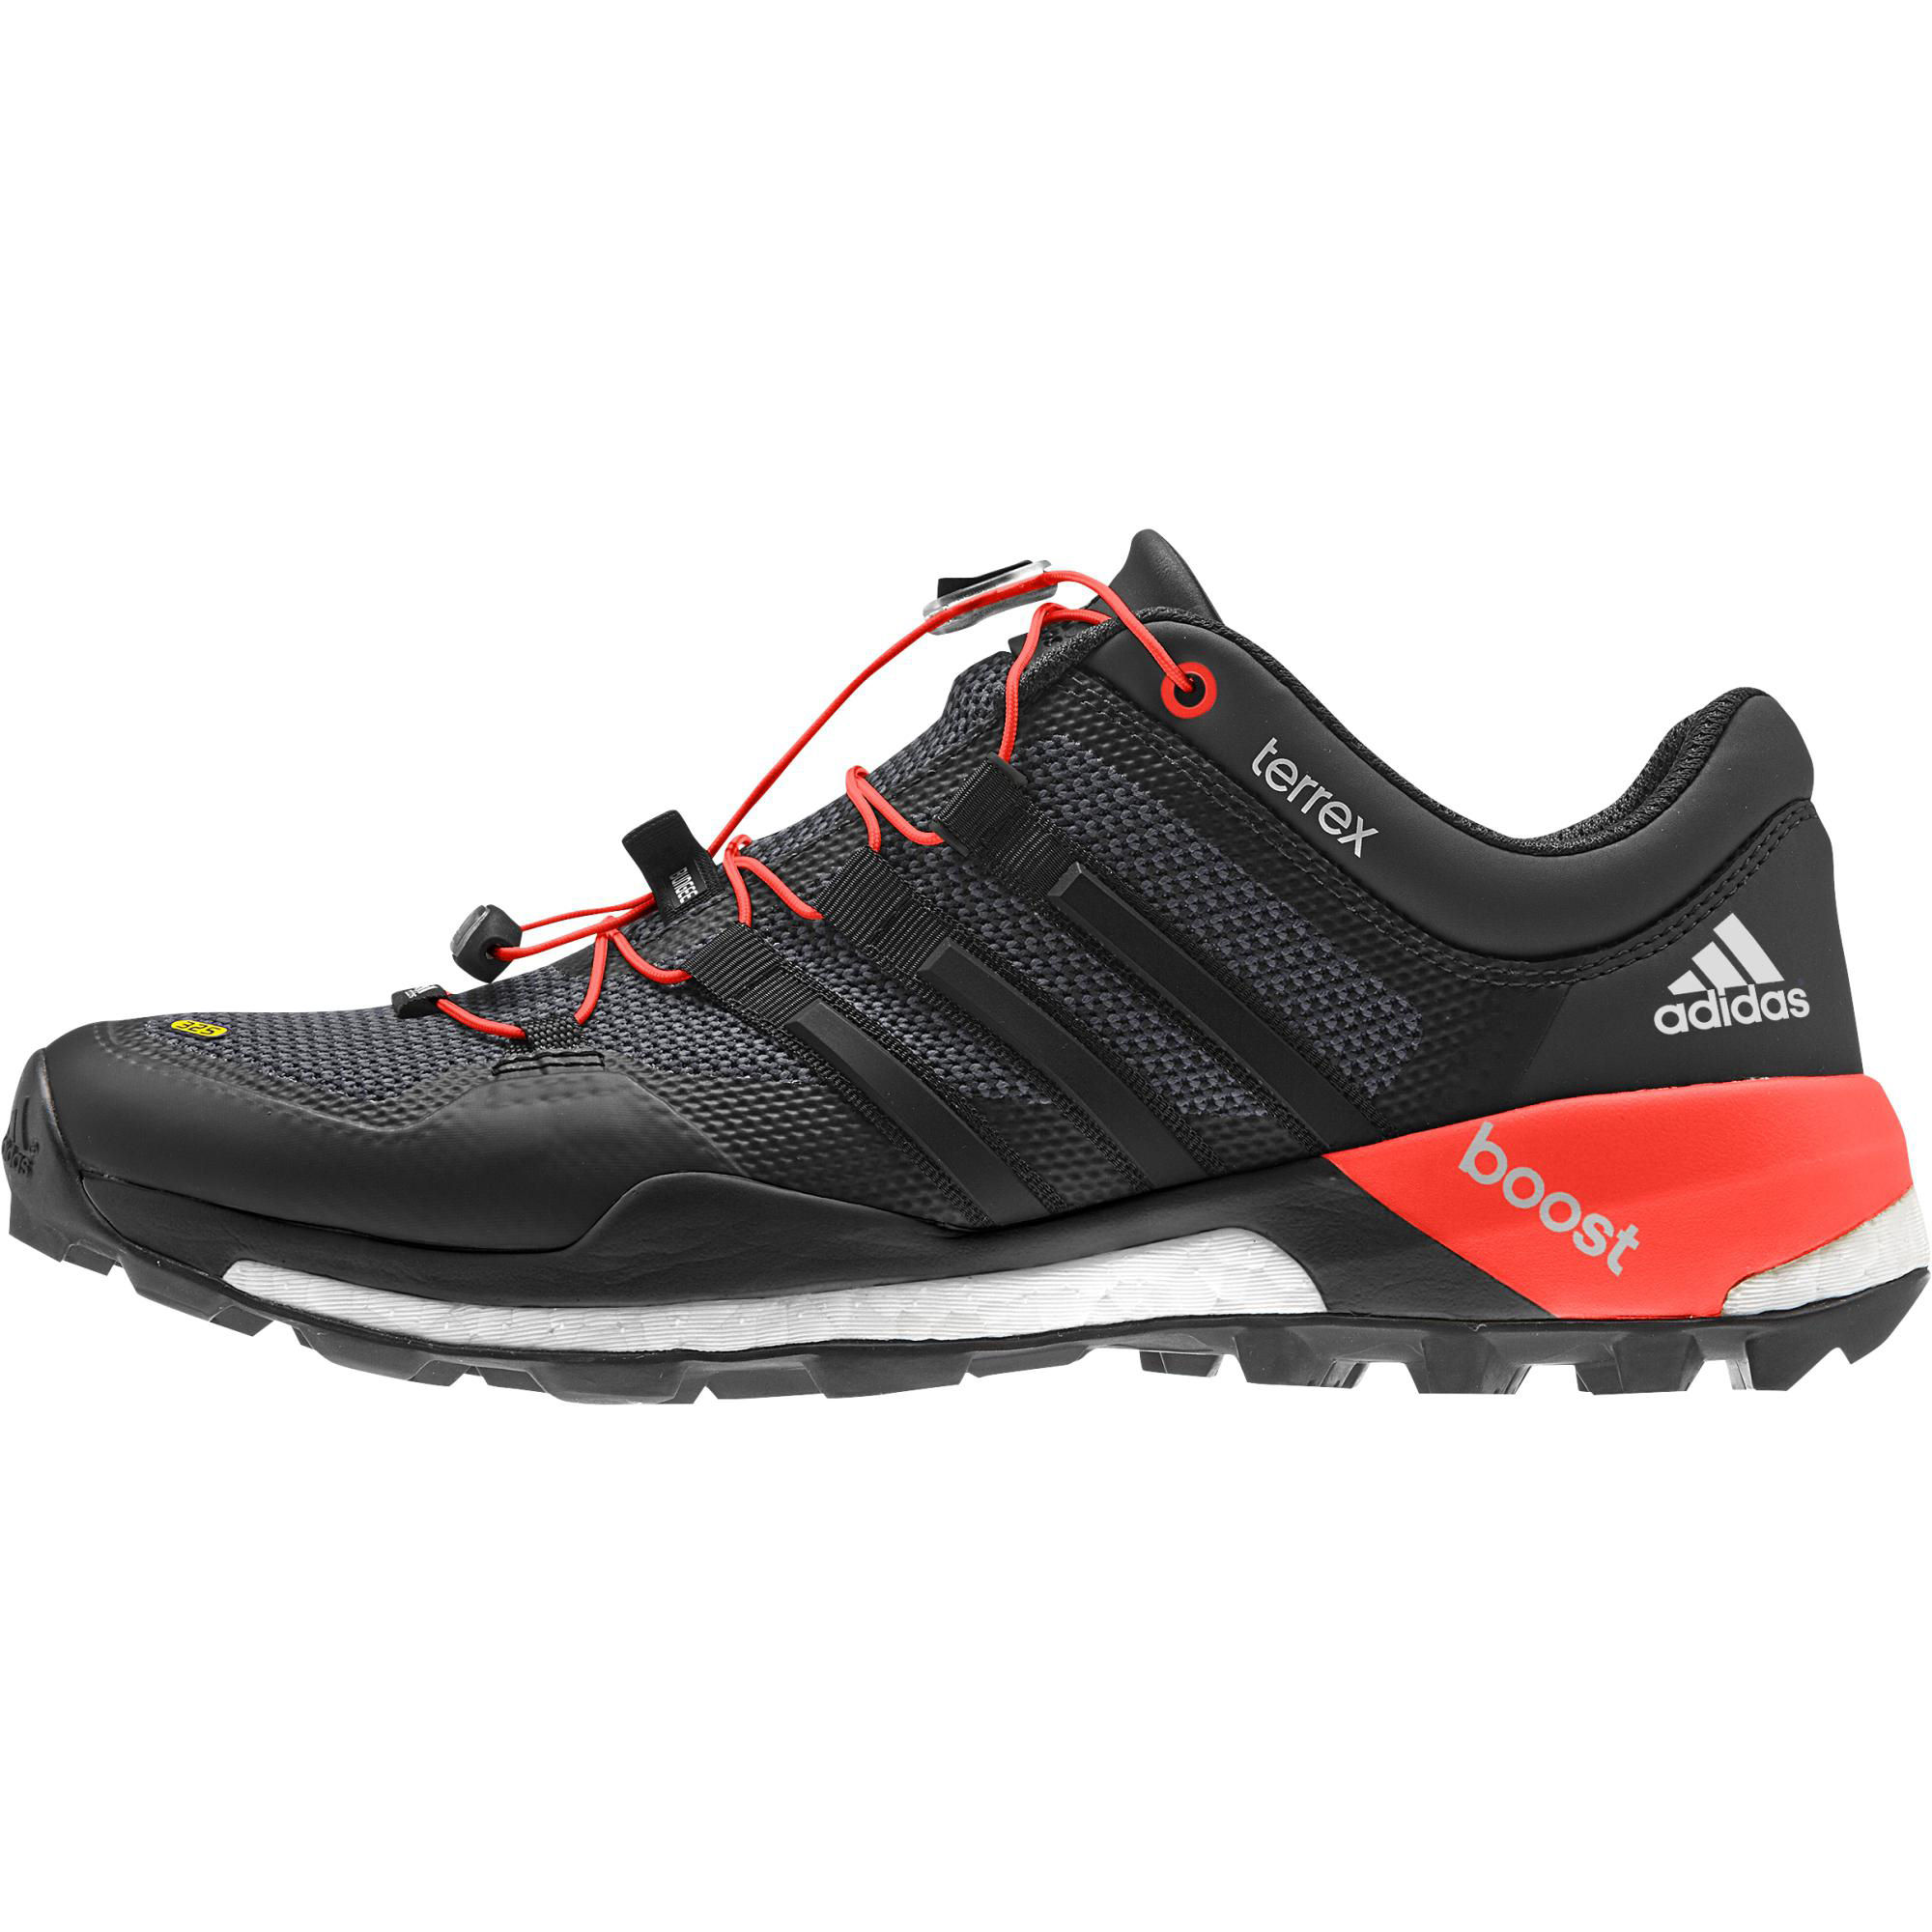 Red And Black Adidas Running Shoes